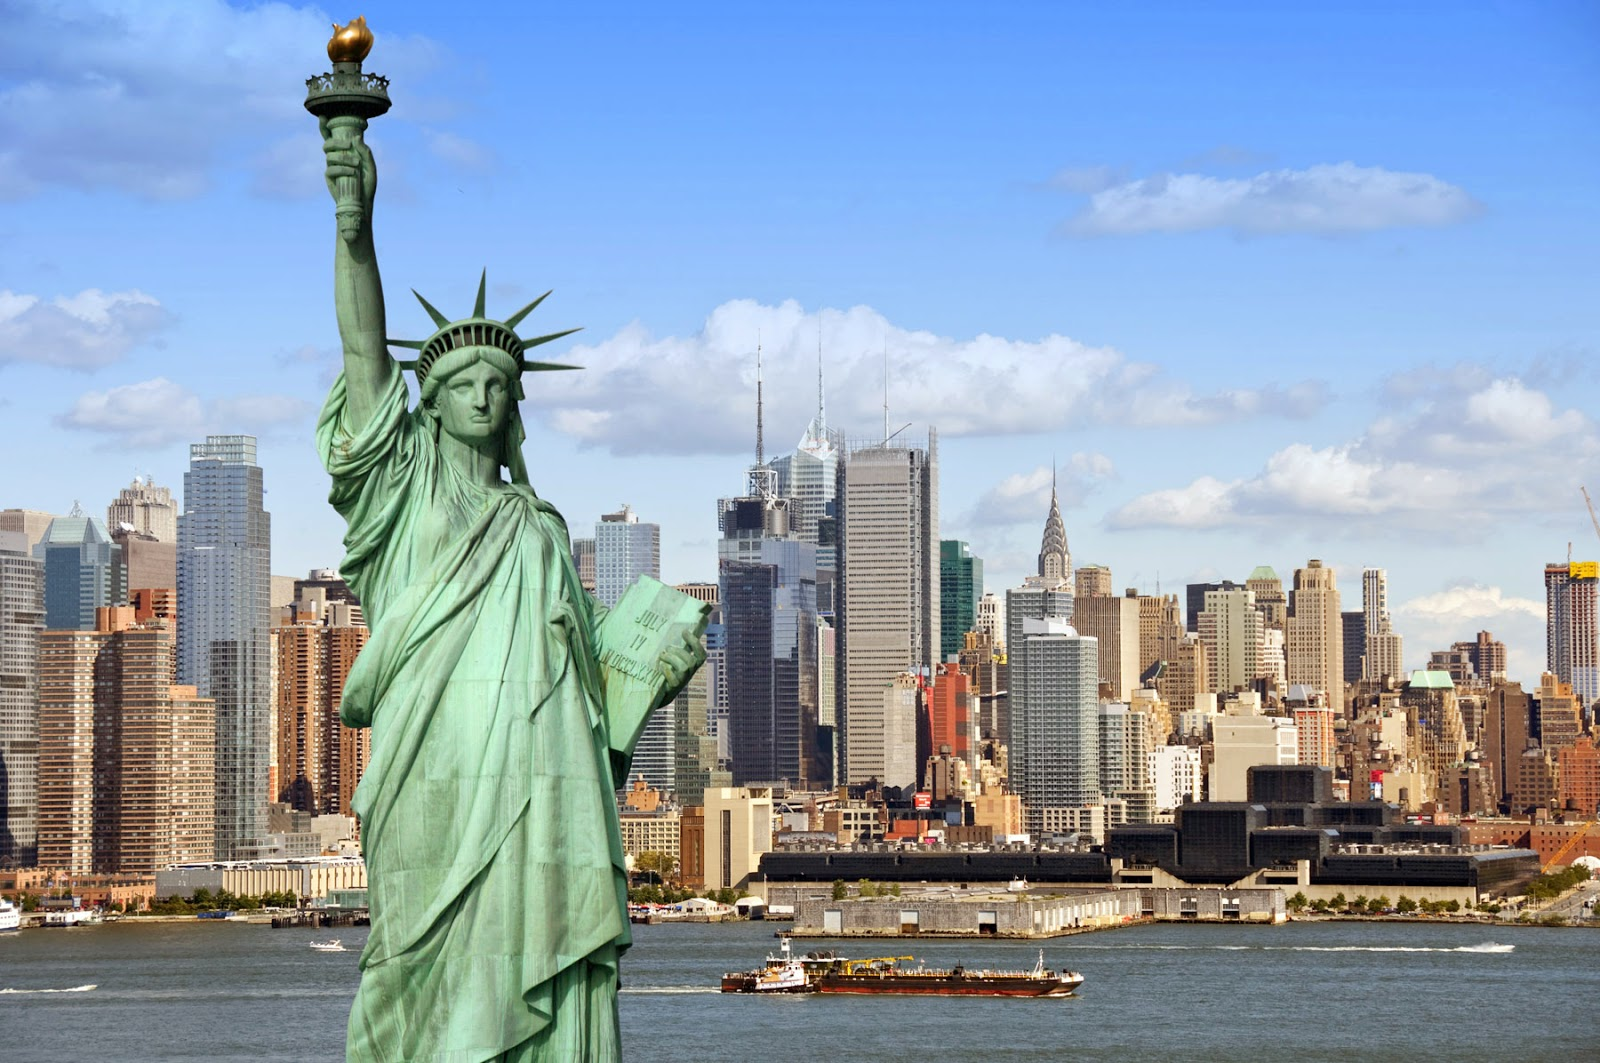 10 Most Richest Cities In The World In 2015